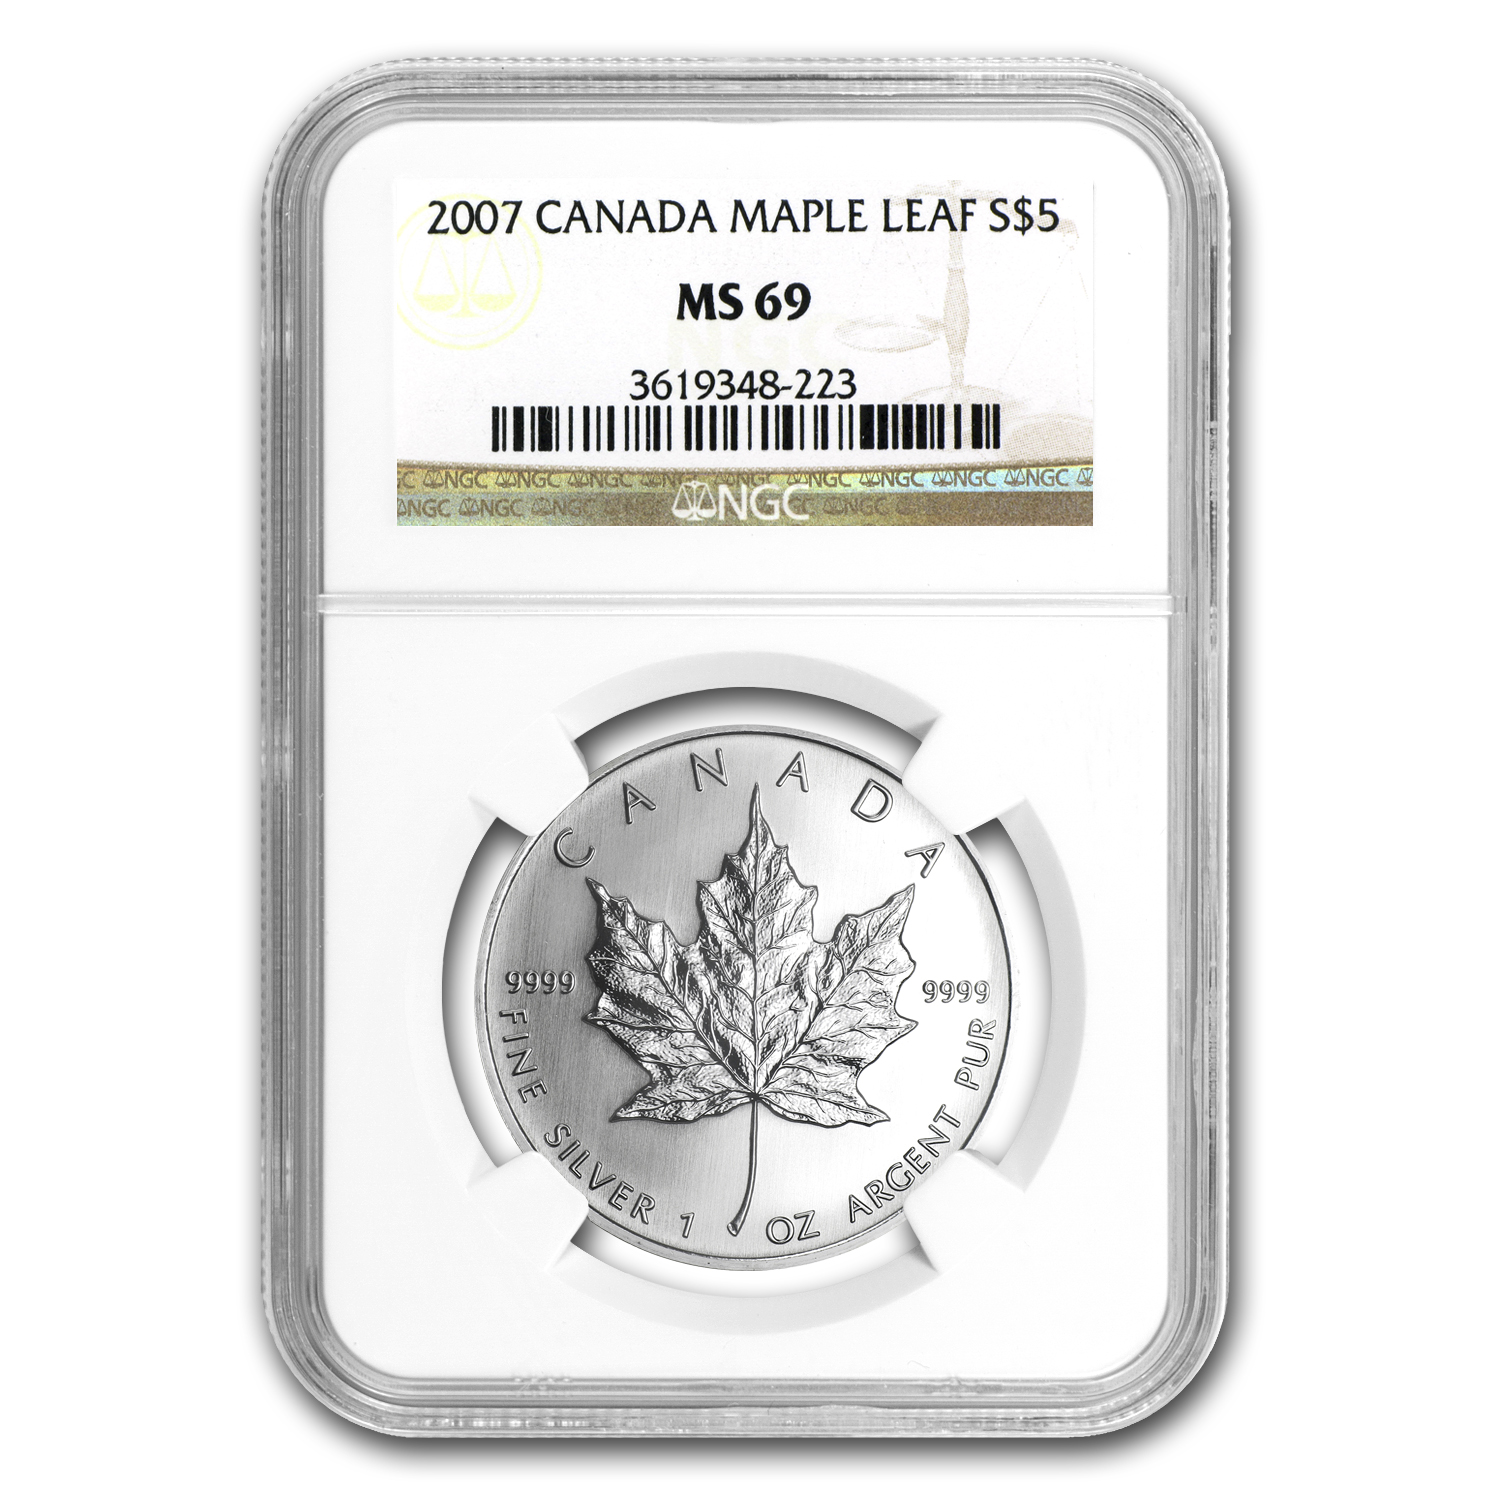 2007 Canada 1 oz Silver Maple Leaf MS-69 NGC